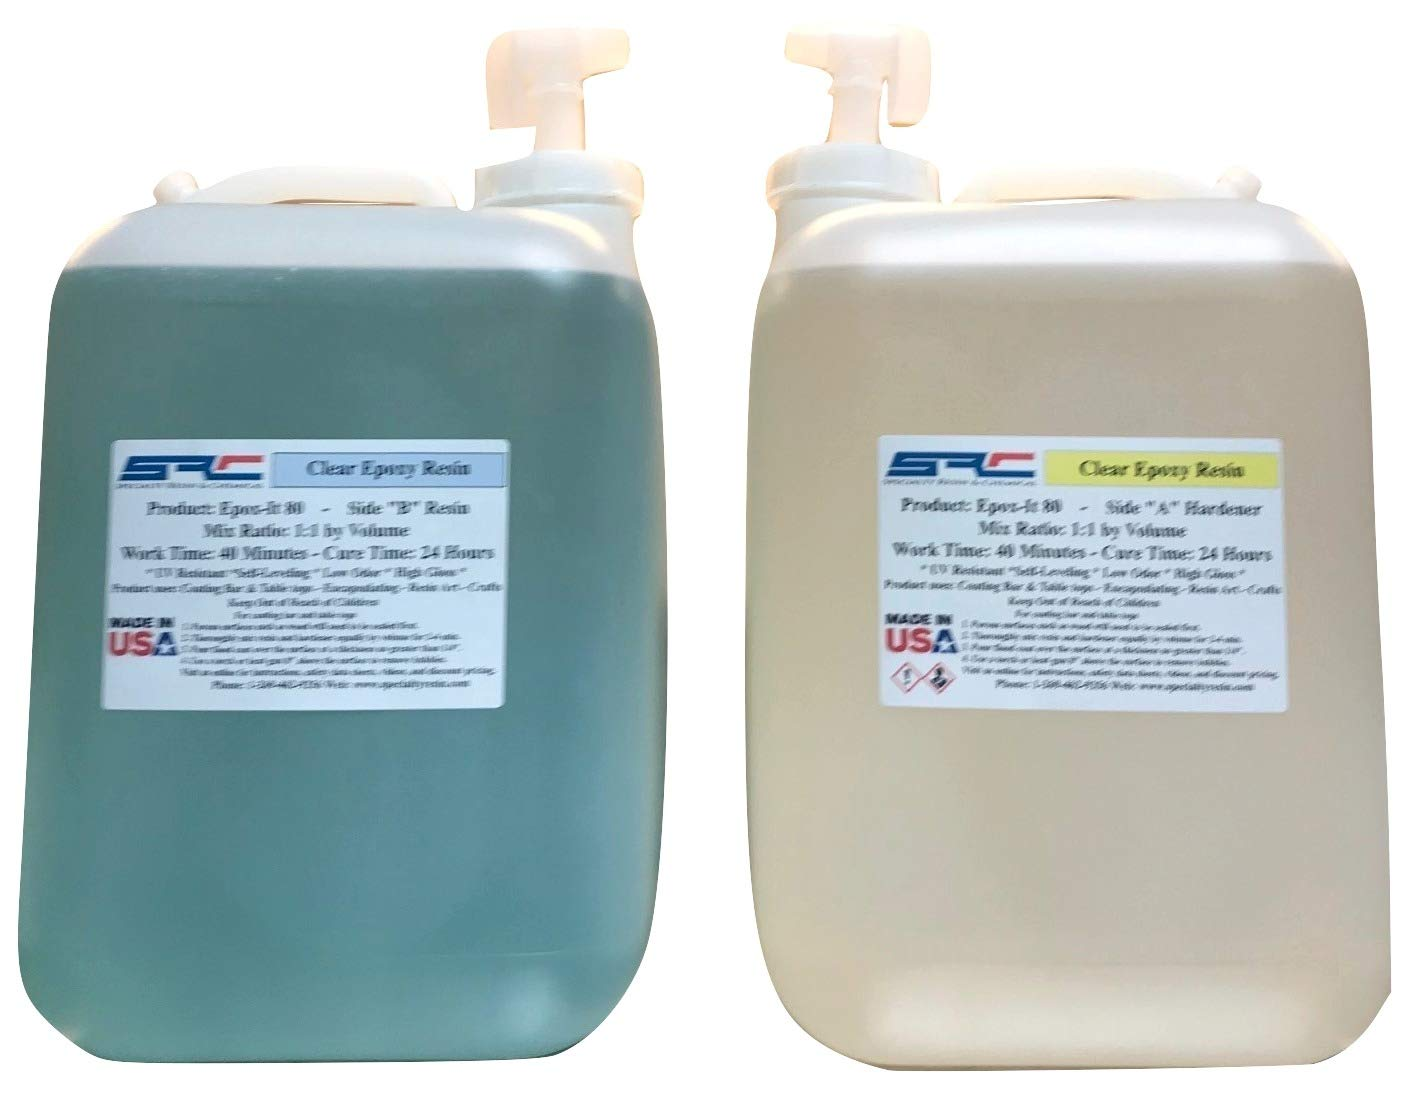 Epox-It 80 Clear Epoxy Resin for Coating Wood Table Tops Bar Top Resin Art - 10 Gallon Kit by Specialty Resins (Image #1)